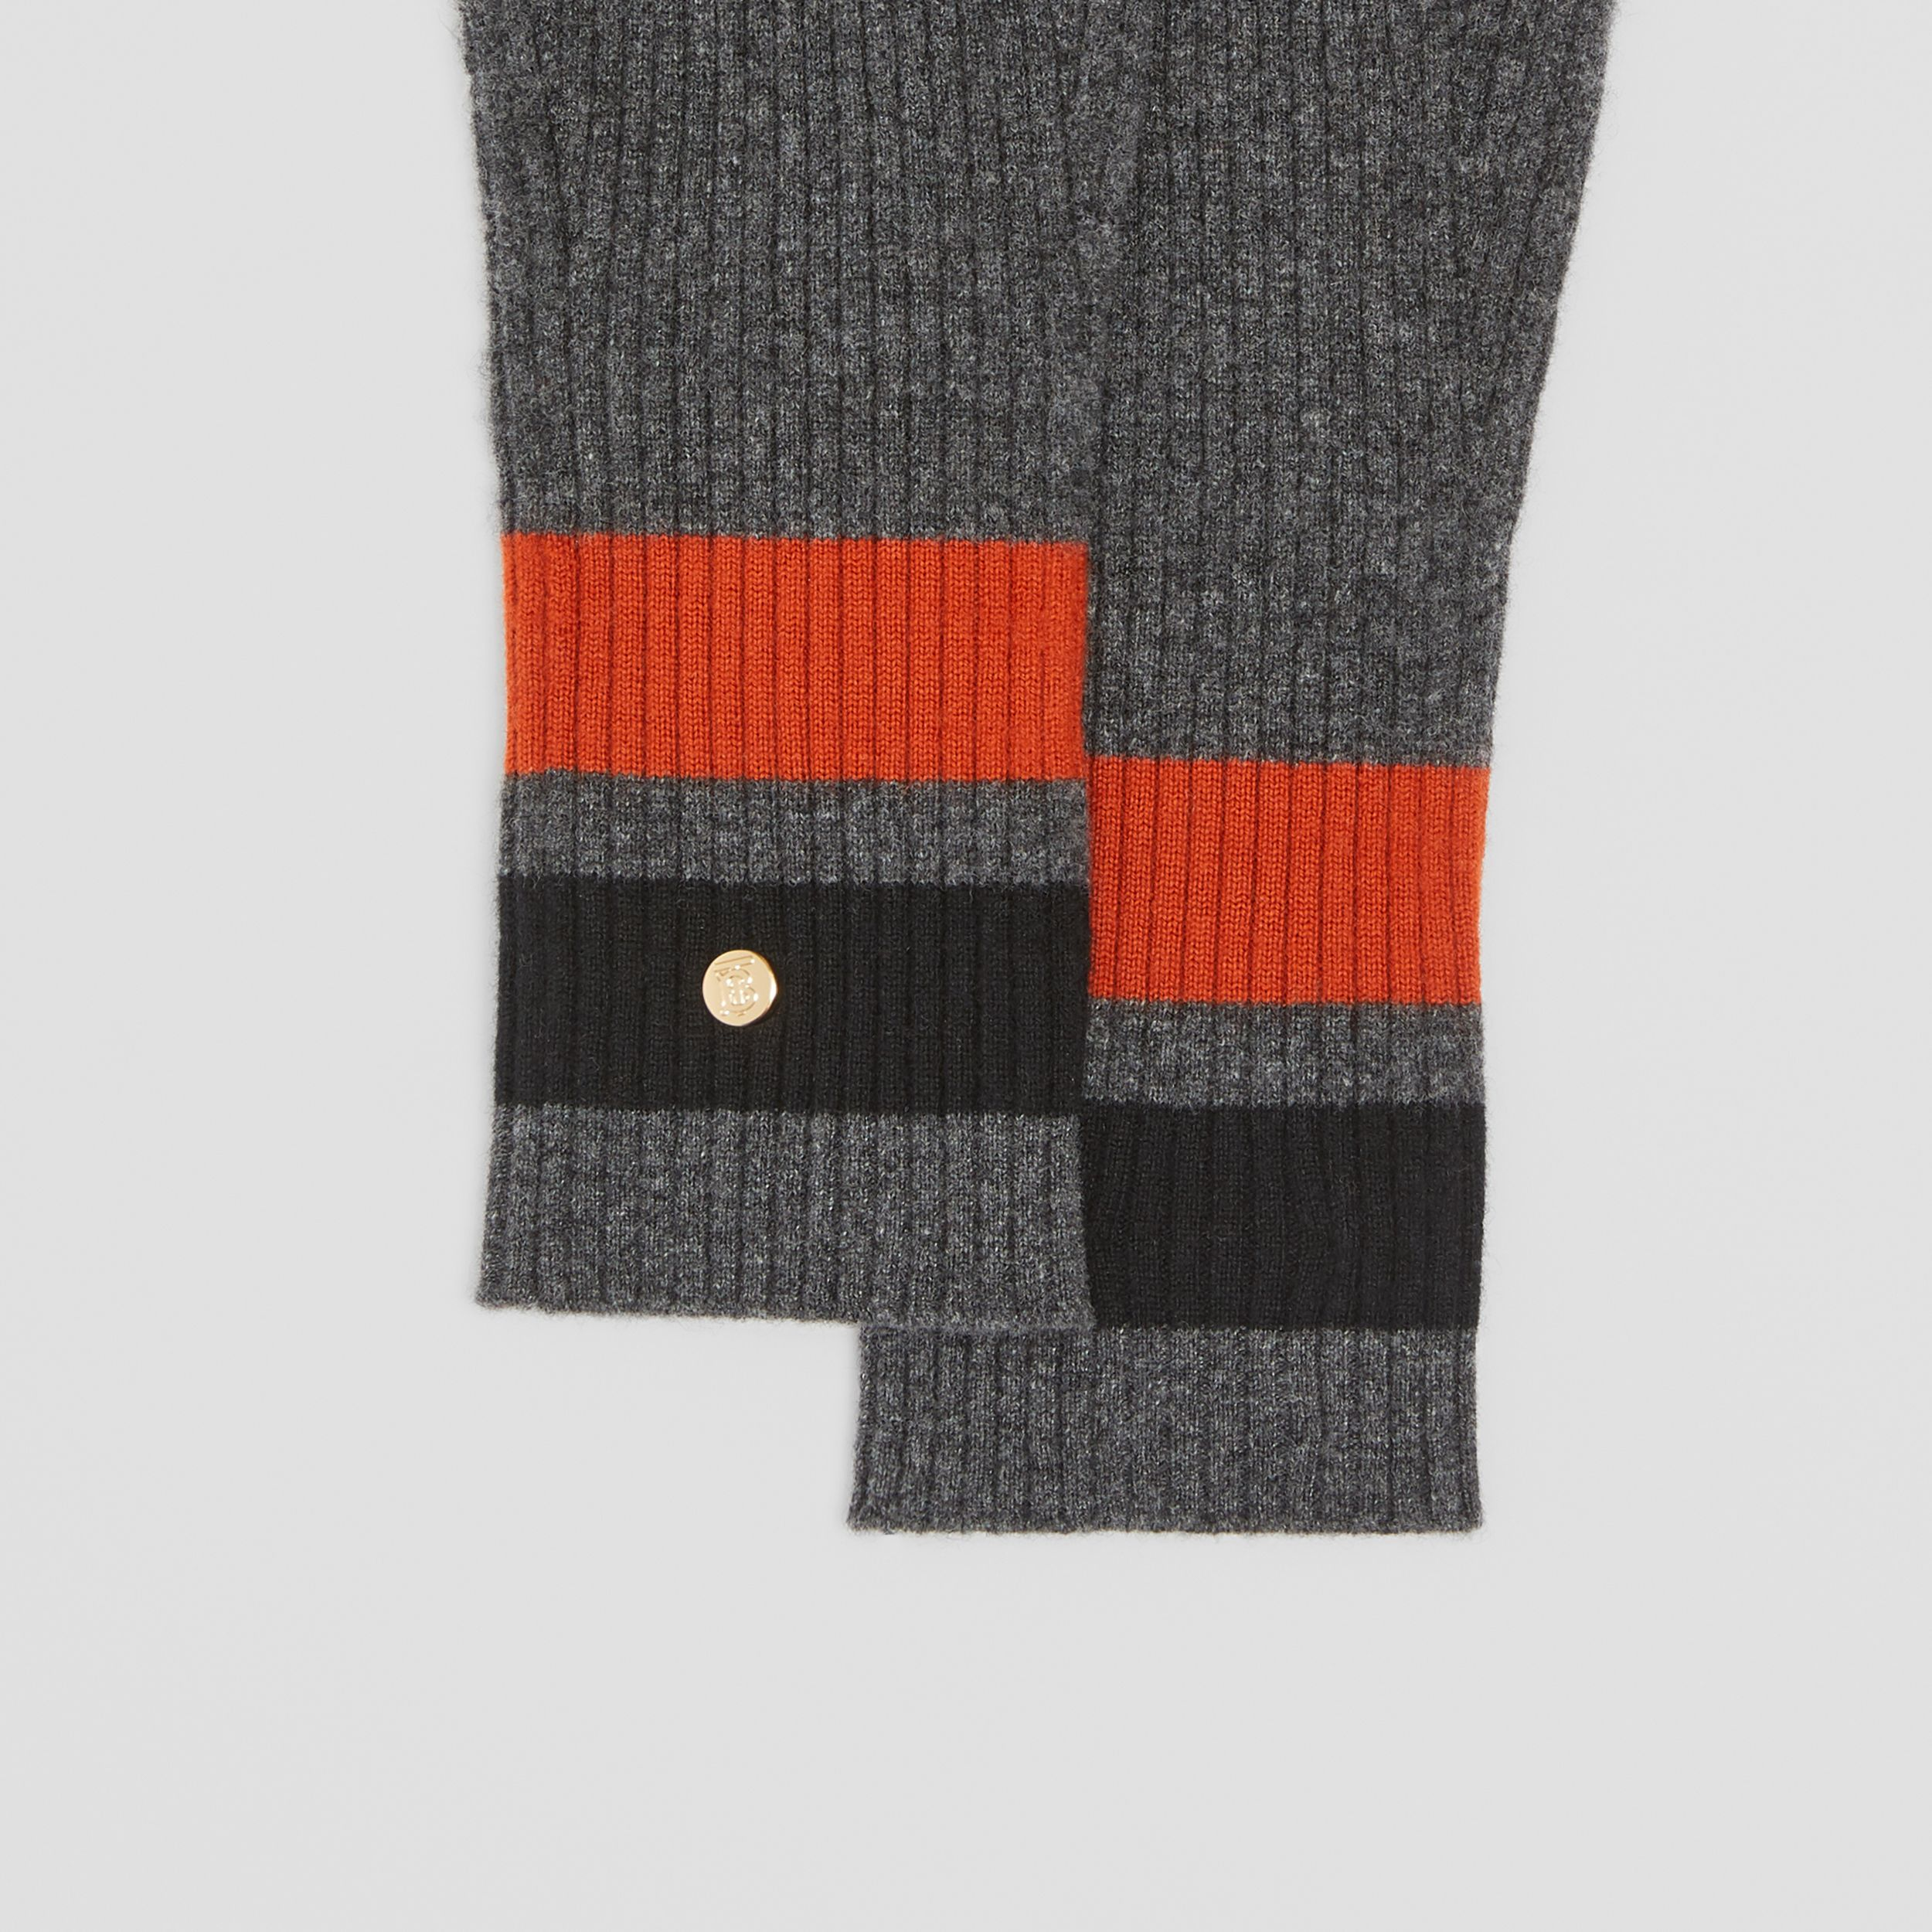 Monogram Motif Merino Wool Cashmere Gloves in Dark Grey | Burberry Canada - 2